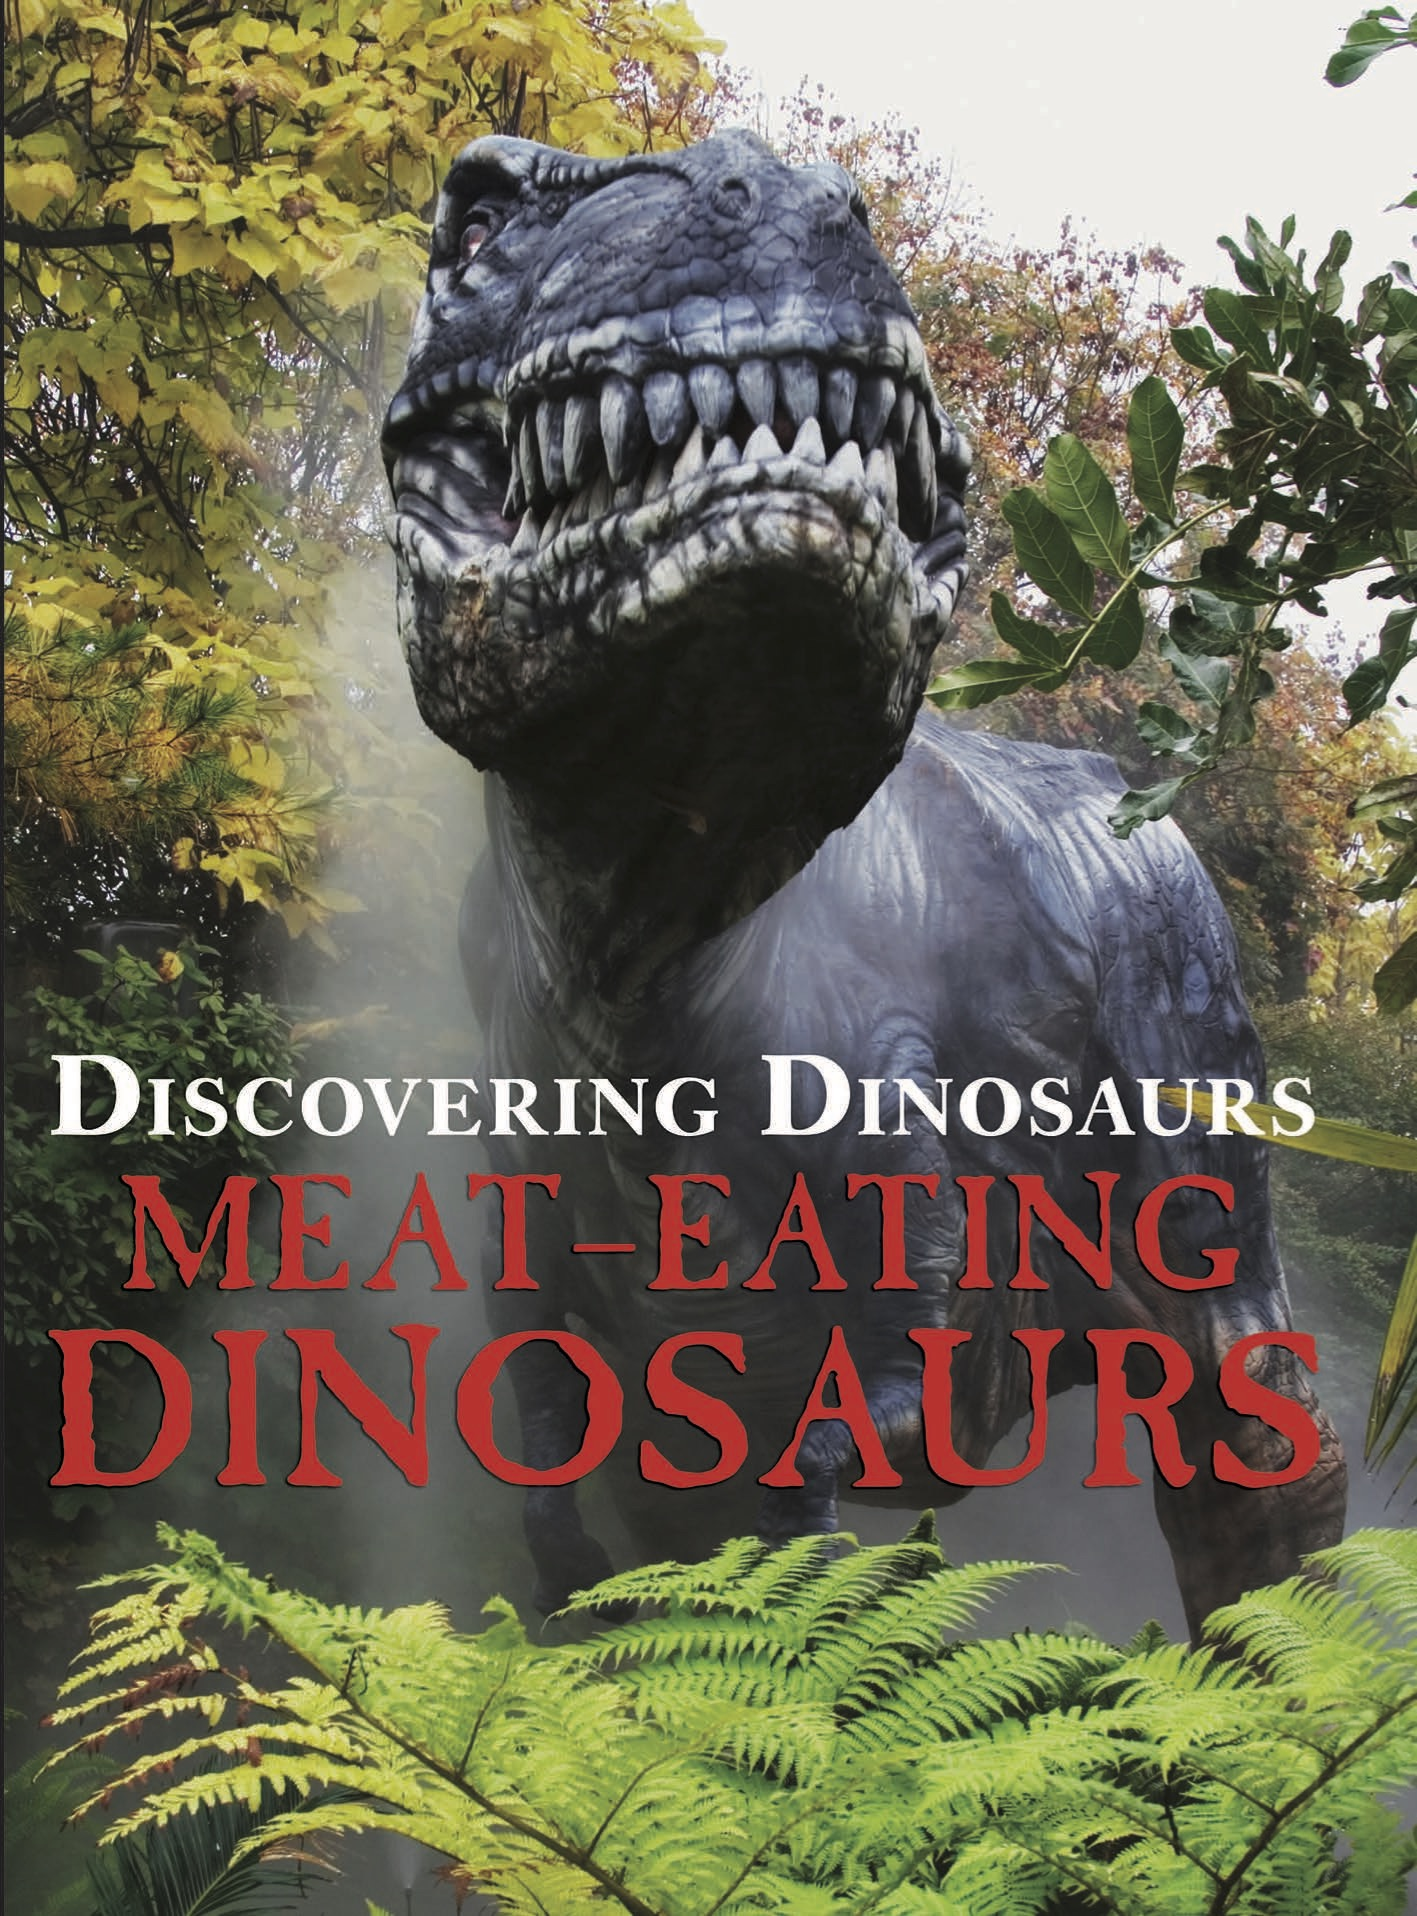 Discovering Dinosaurs: Meat-Eating Dinosaurs